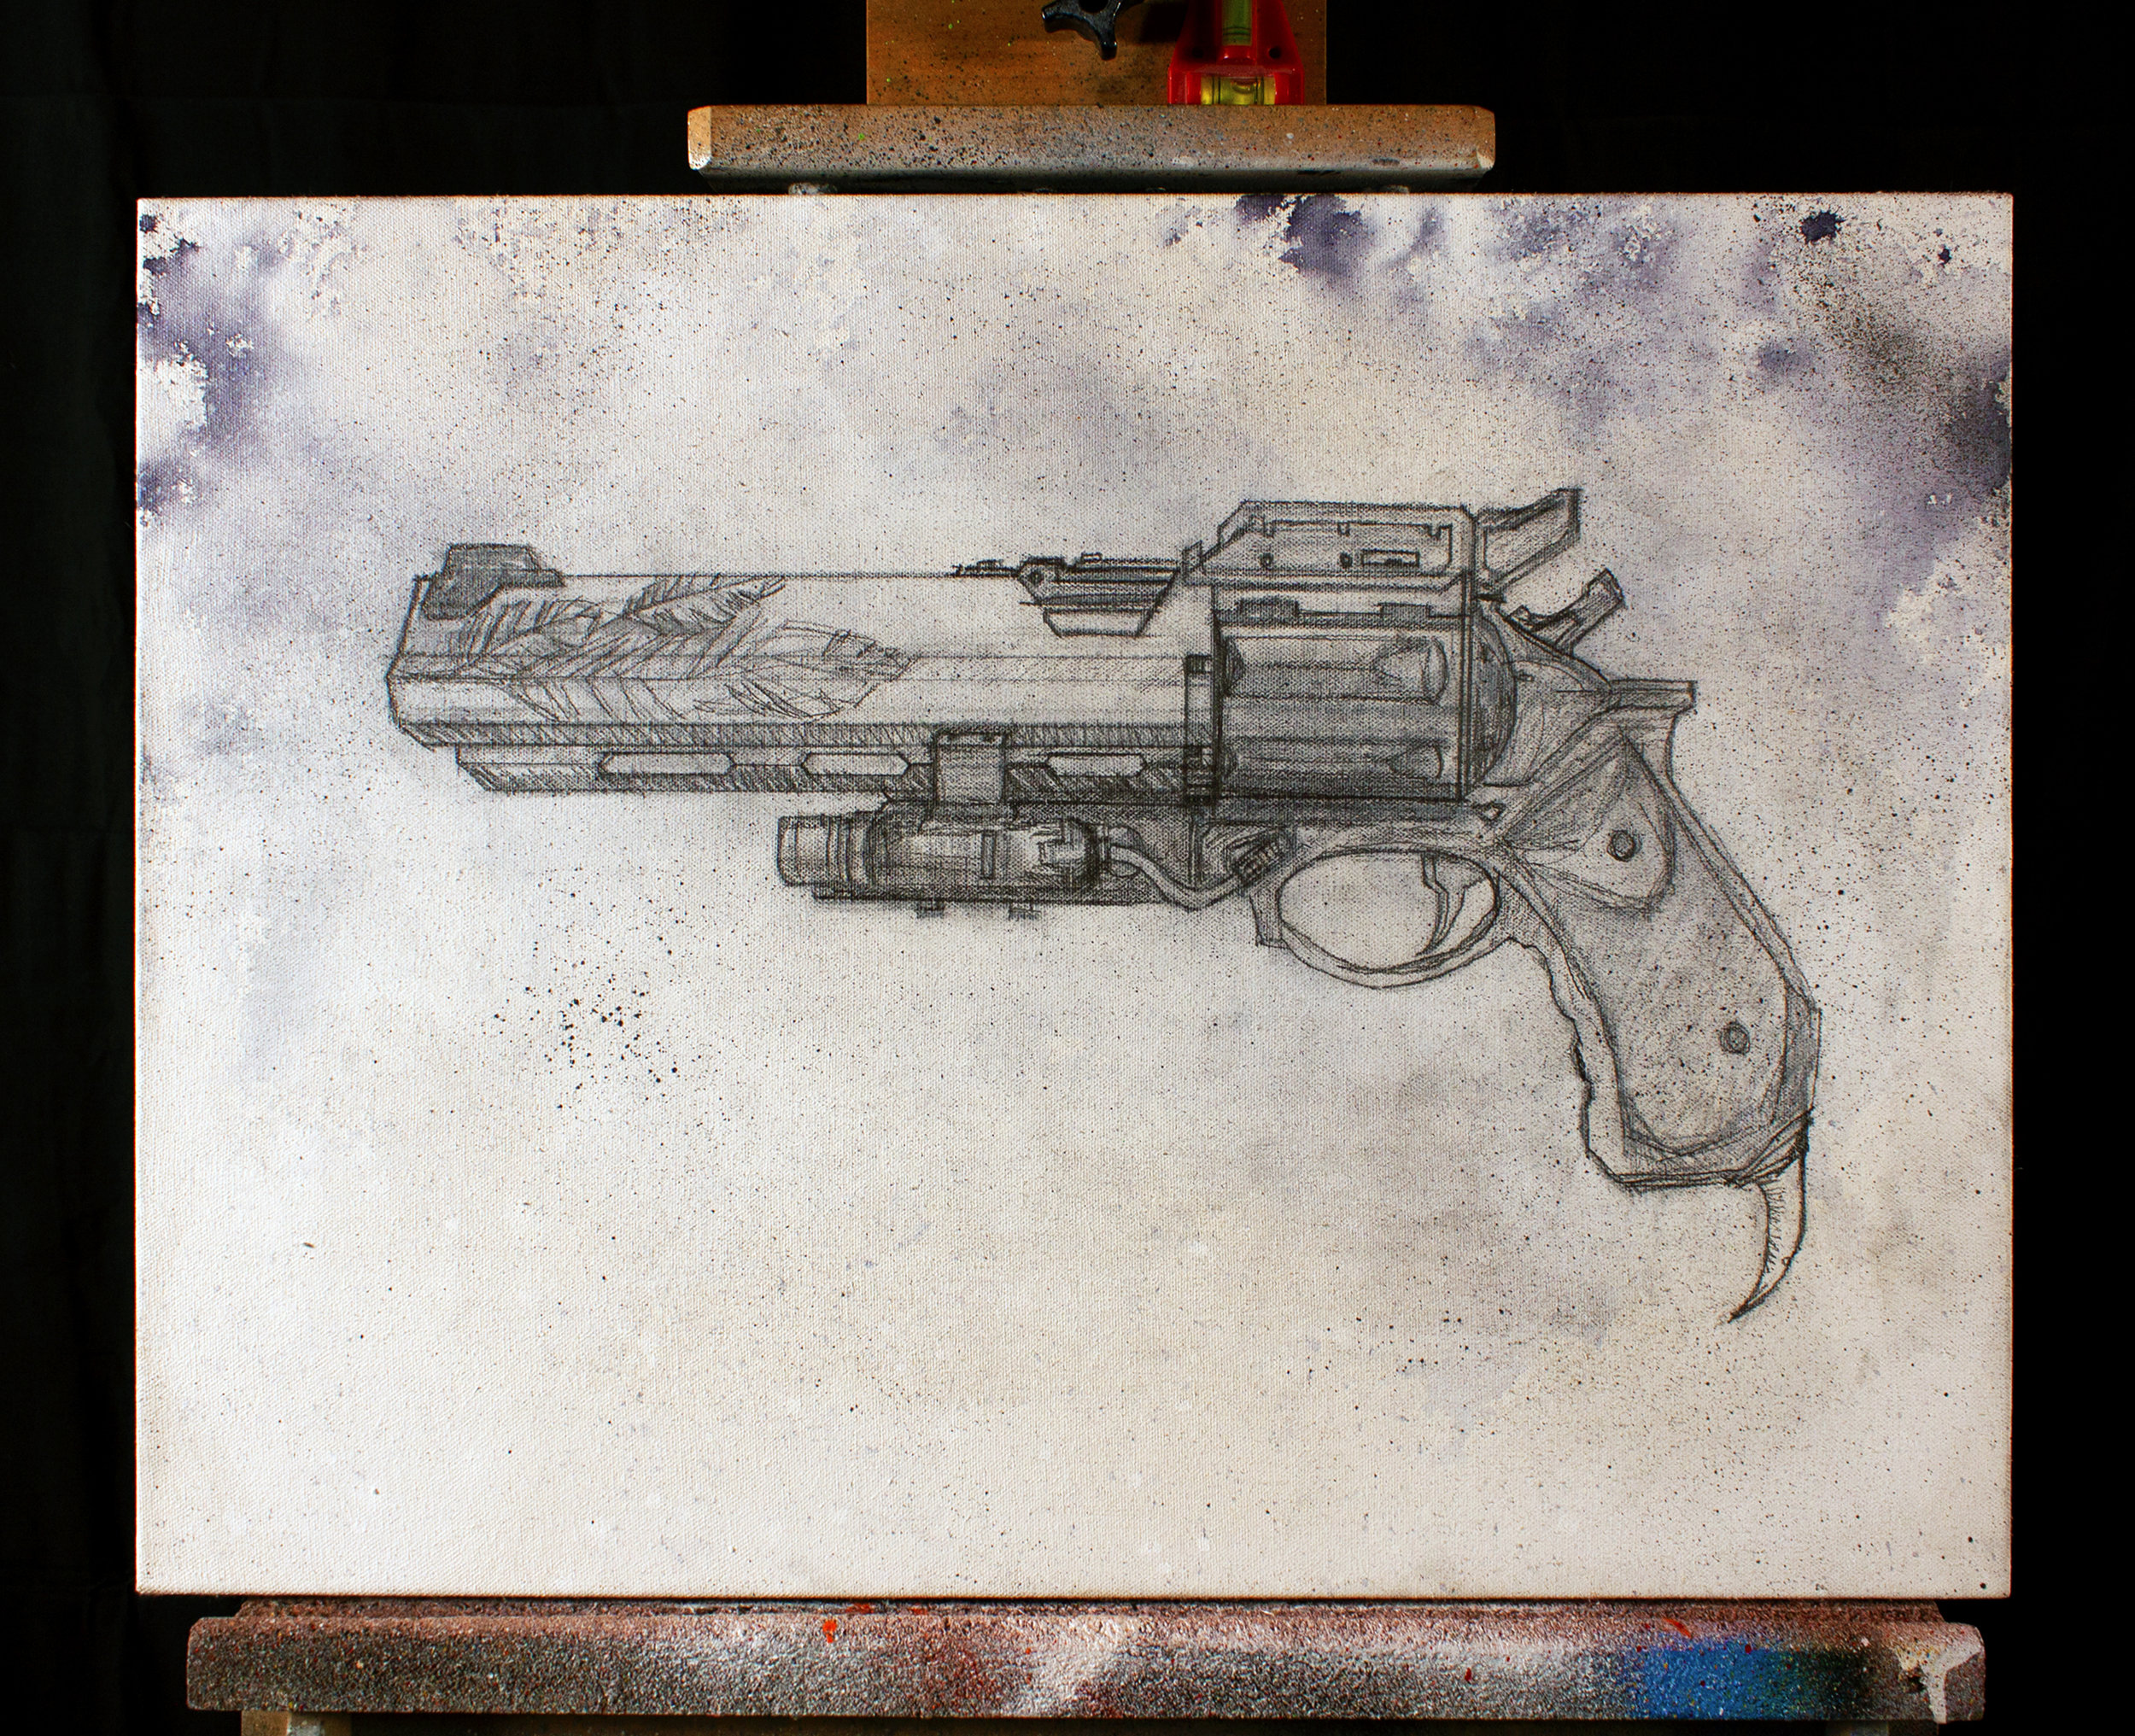 Hawkmoon (D1) (WIP - May 14 2019) - background and sketch only